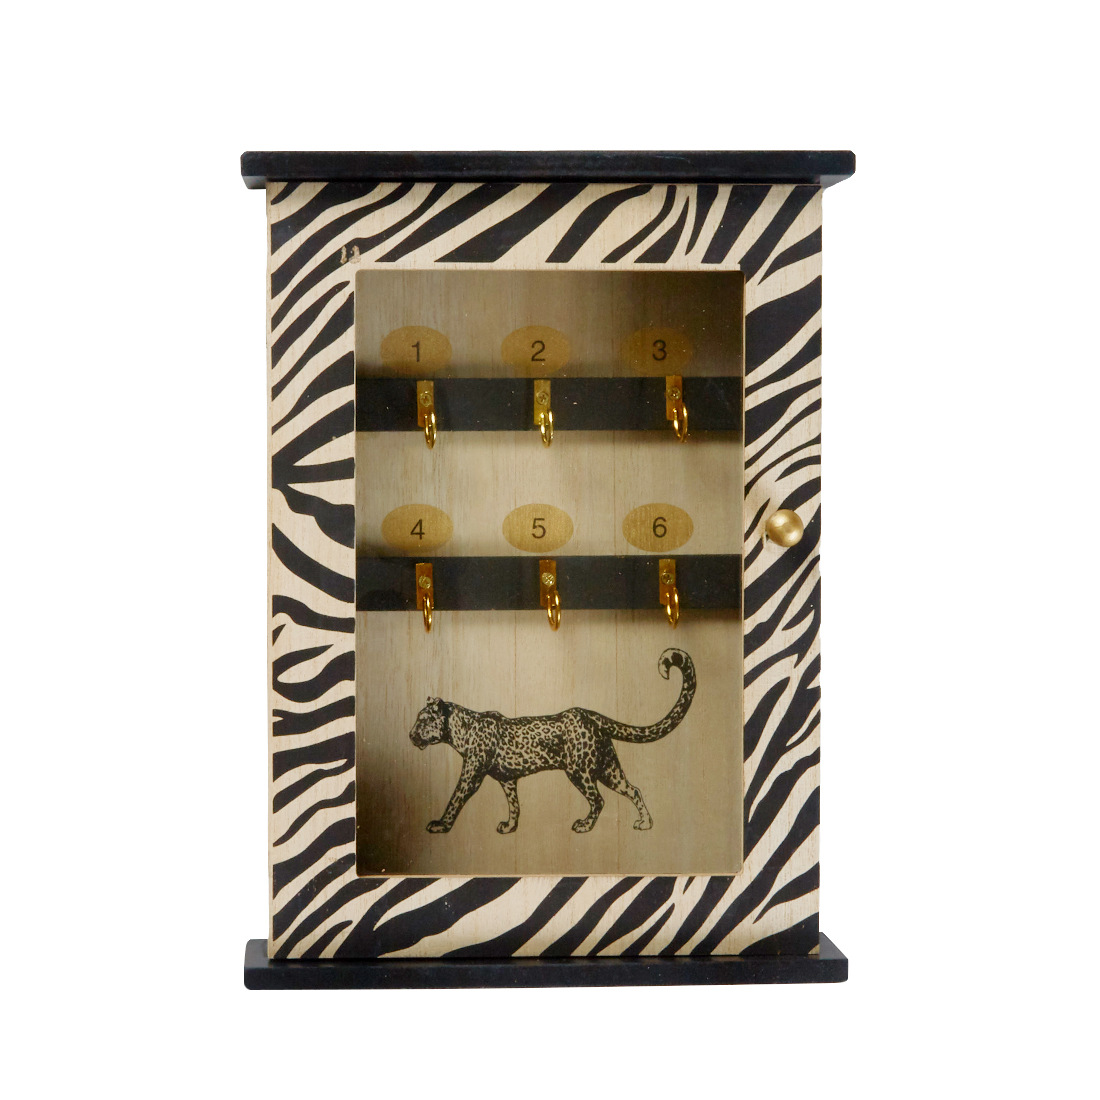 Leopard Key Box